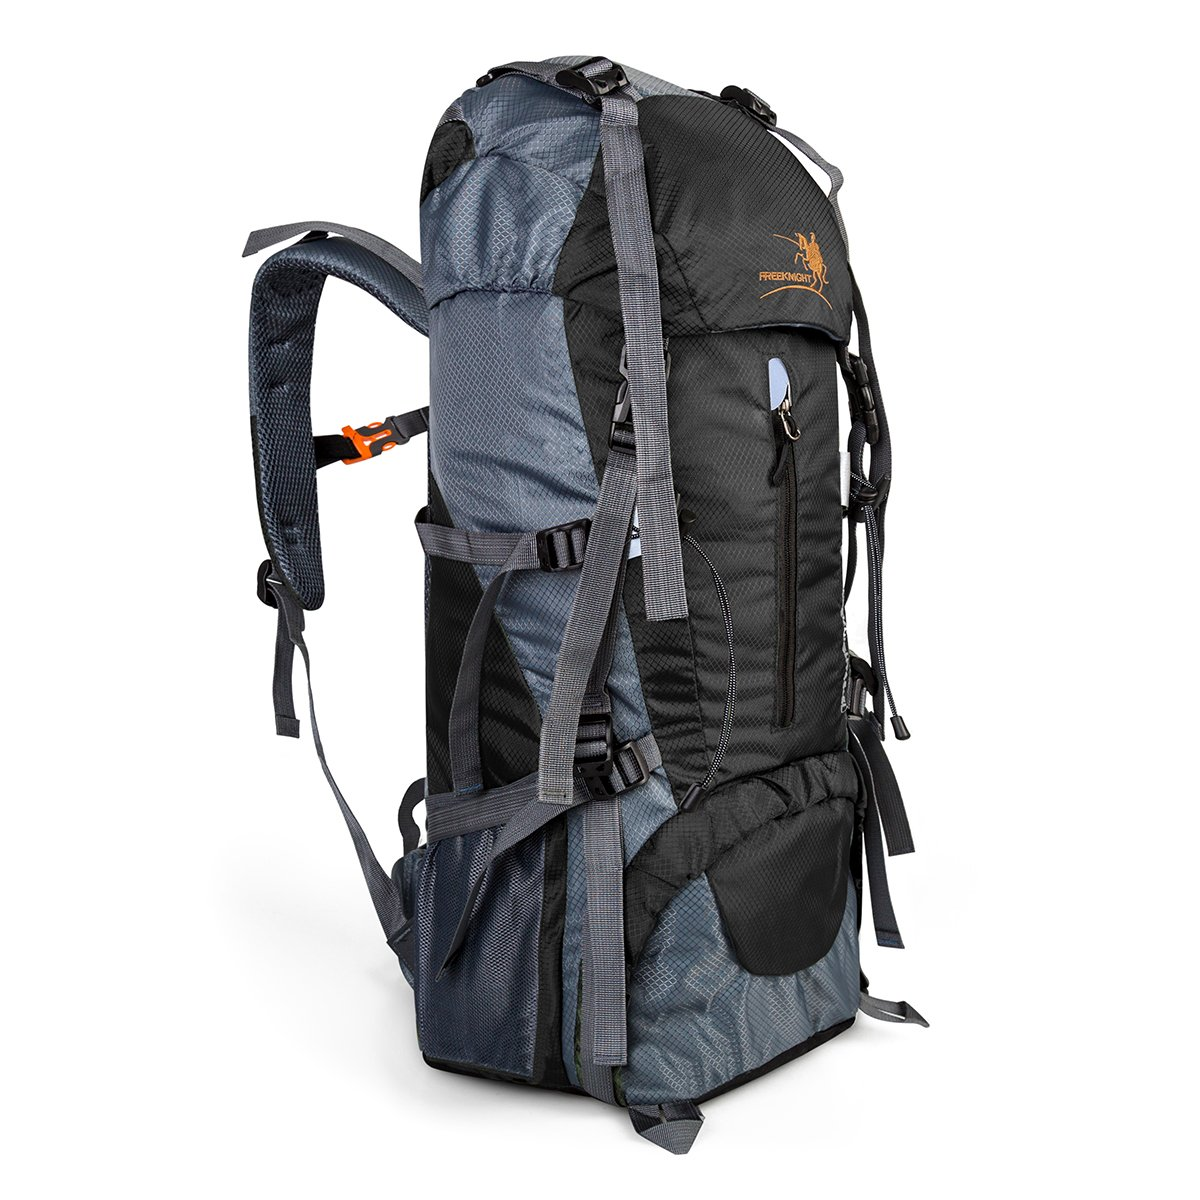 60+5L Hiking Backpack Water Resistant Outdoor Sport Bag for Camping Climbing Mountaineering Fishing Cycling Skiing Travel Backpack Daypack Women Men Size 12.2\'\'x 9.8\'\'x 29.9\'\' (Black)